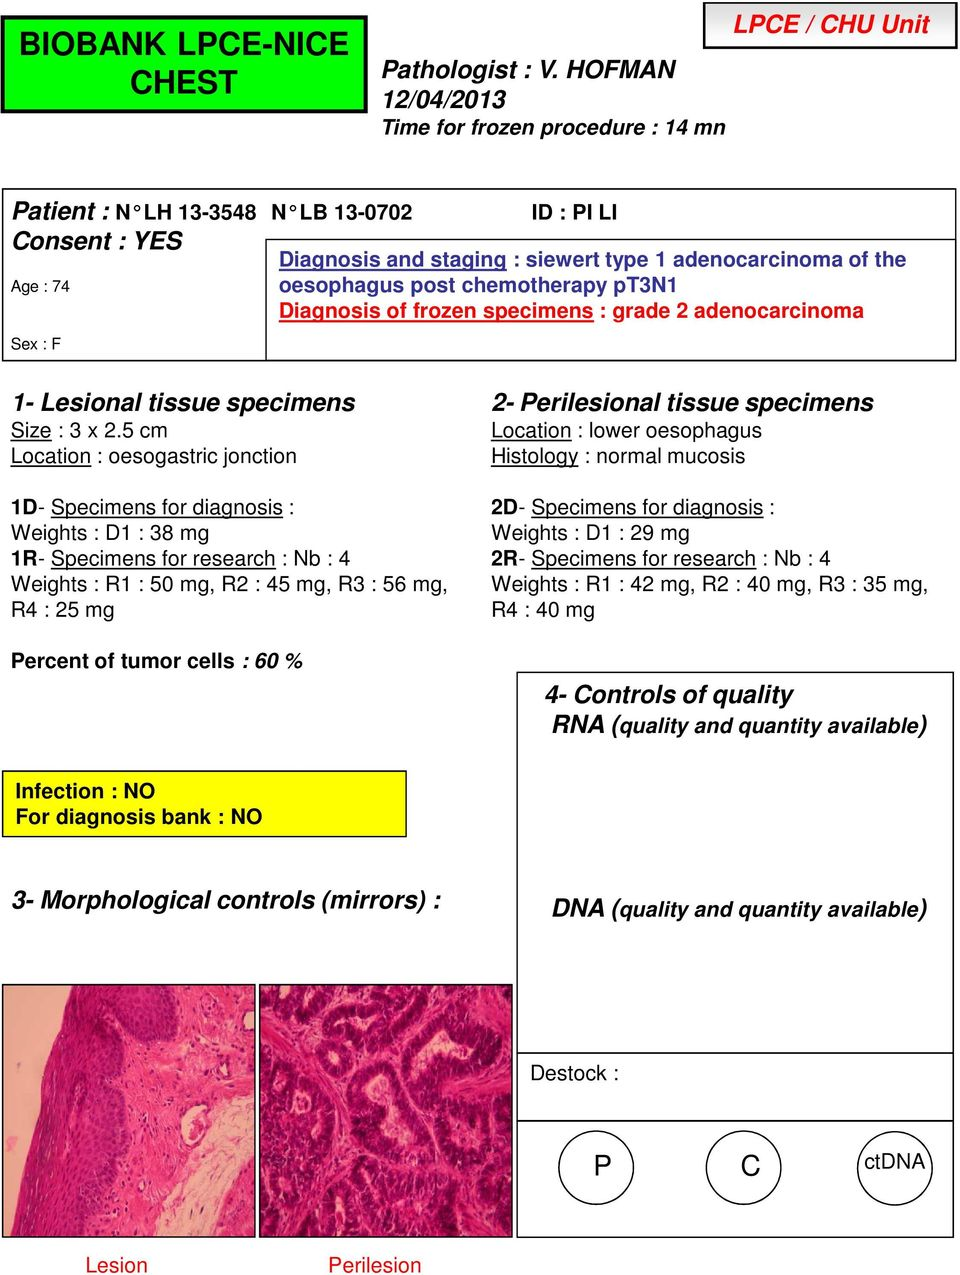 of the oesophagus post chemotherapy pt3n1 Diagnosis of frozen specimens : grade 2 adenocarcinoma Size : 3 x 2.